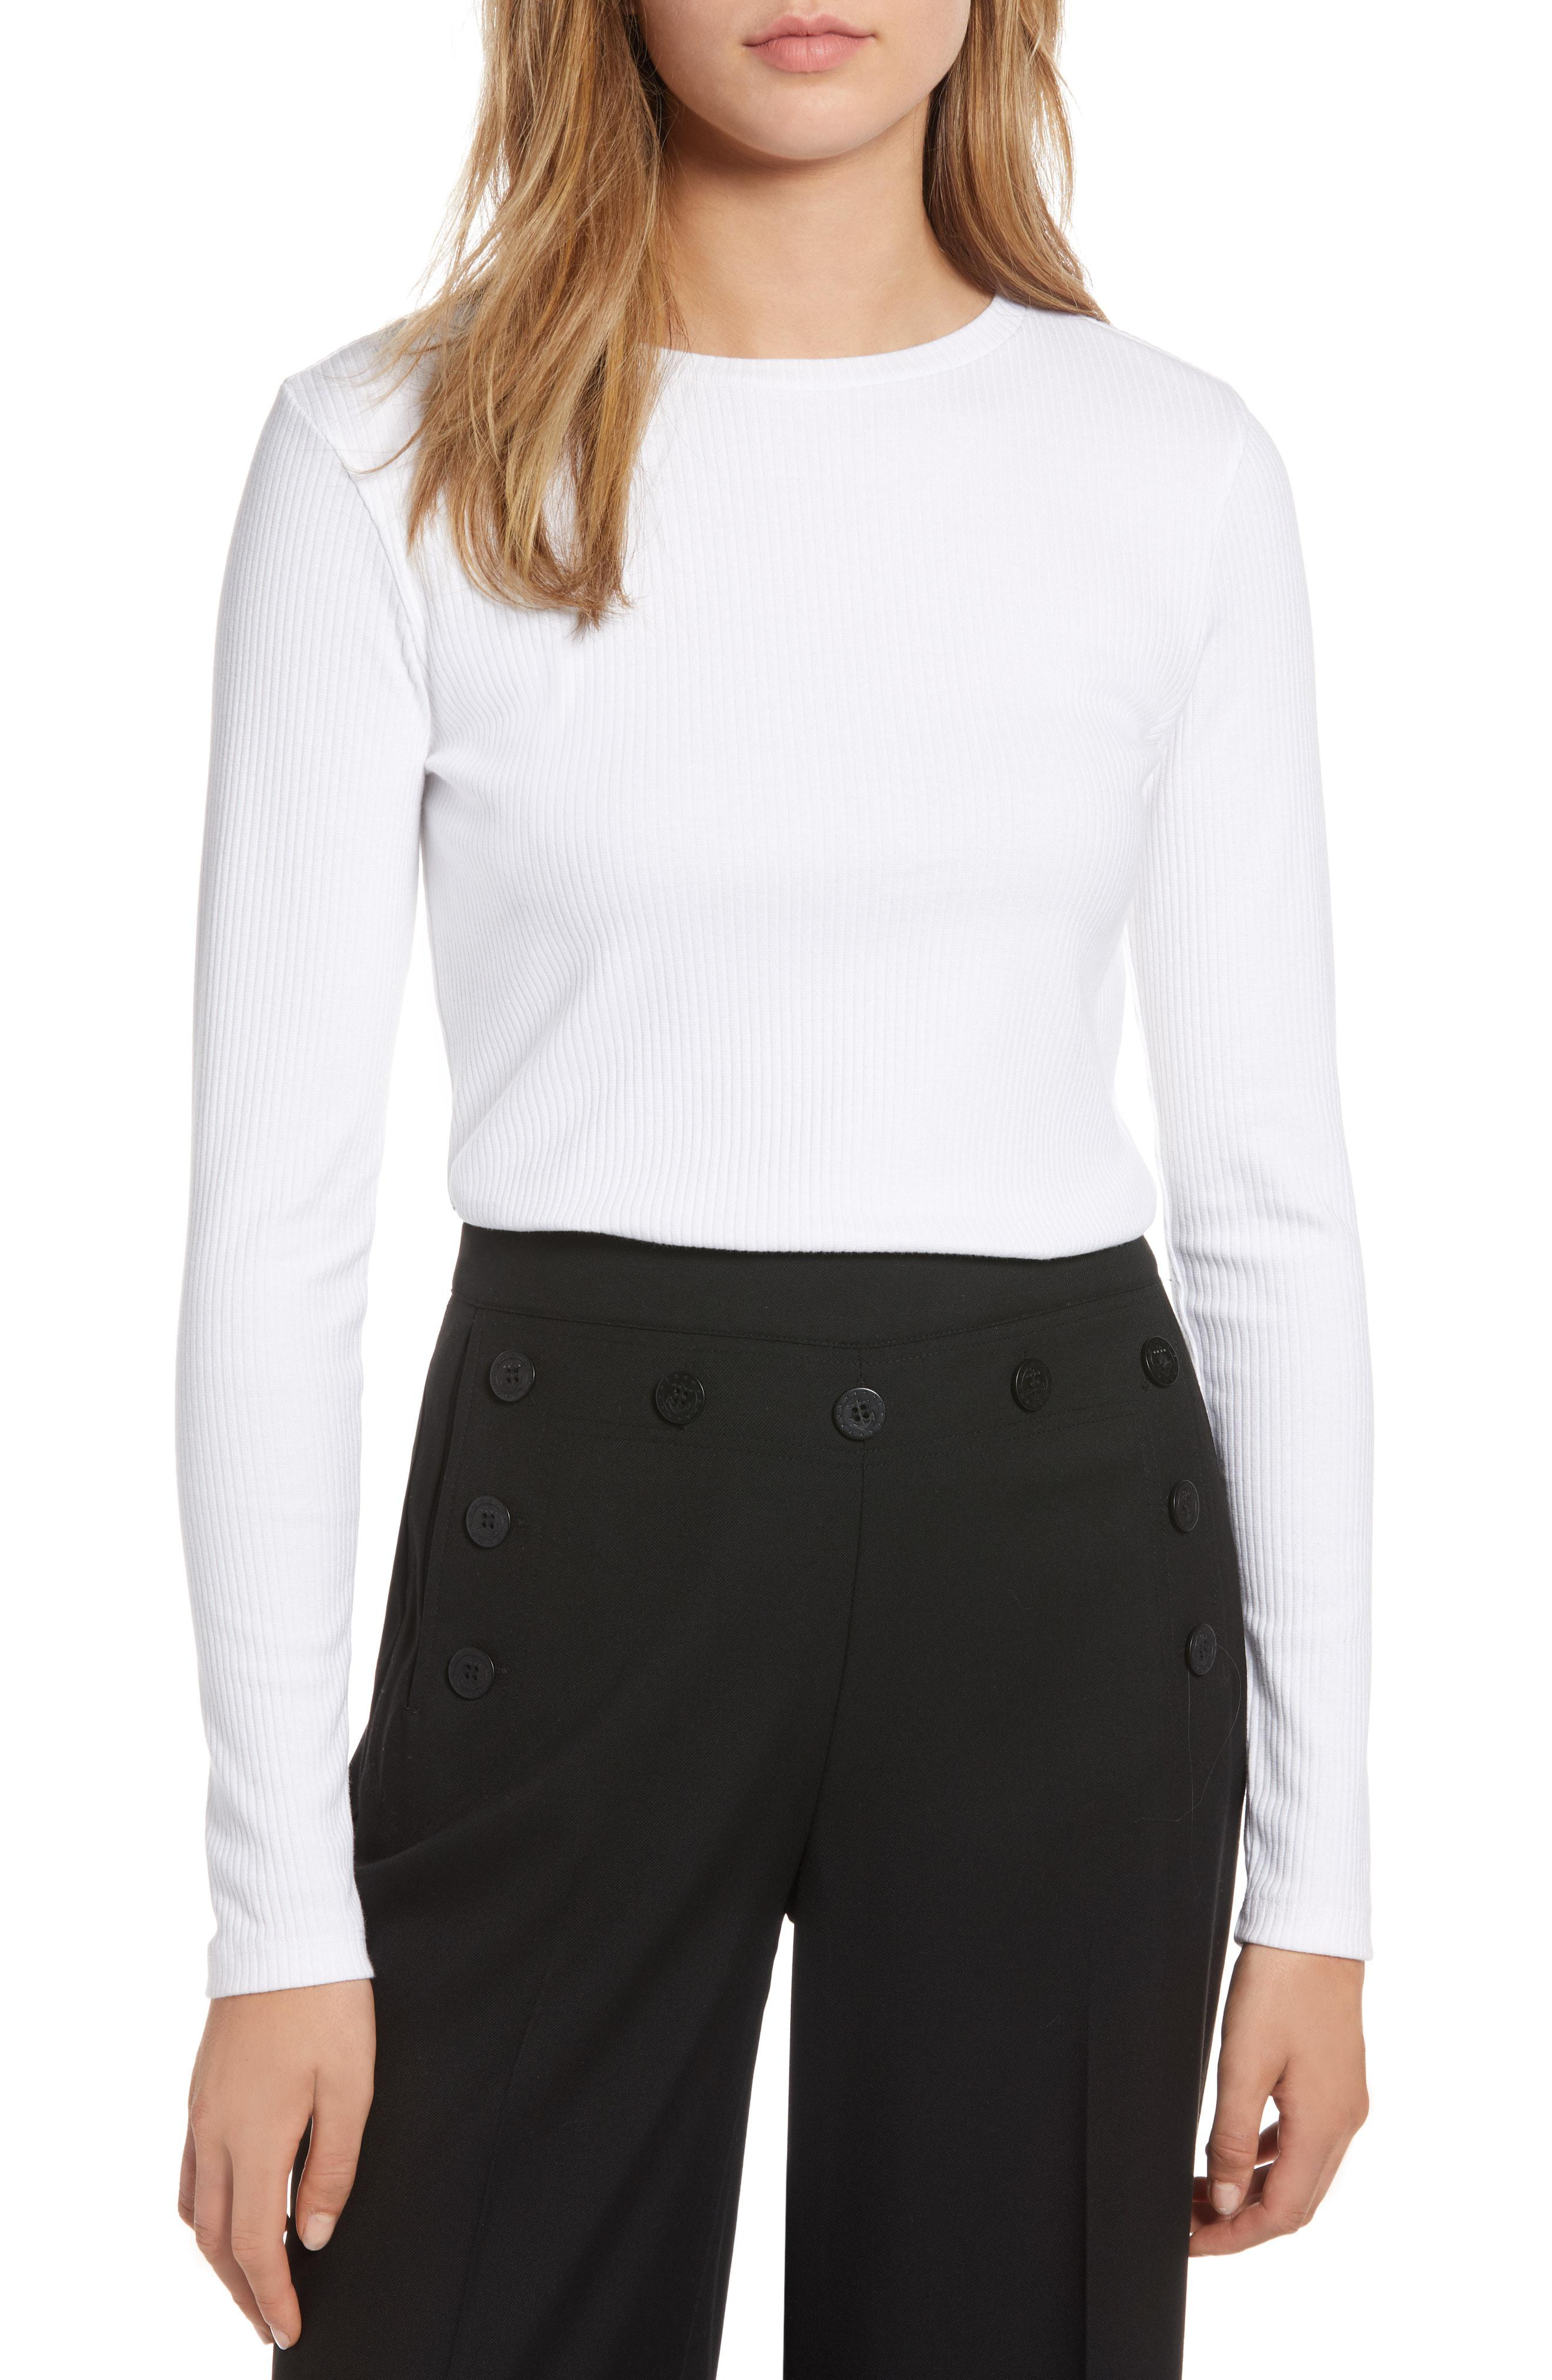 76d139d9df Lyst - Nordstrom 1901 Rib Crewneck Stretch Cotton Top in White